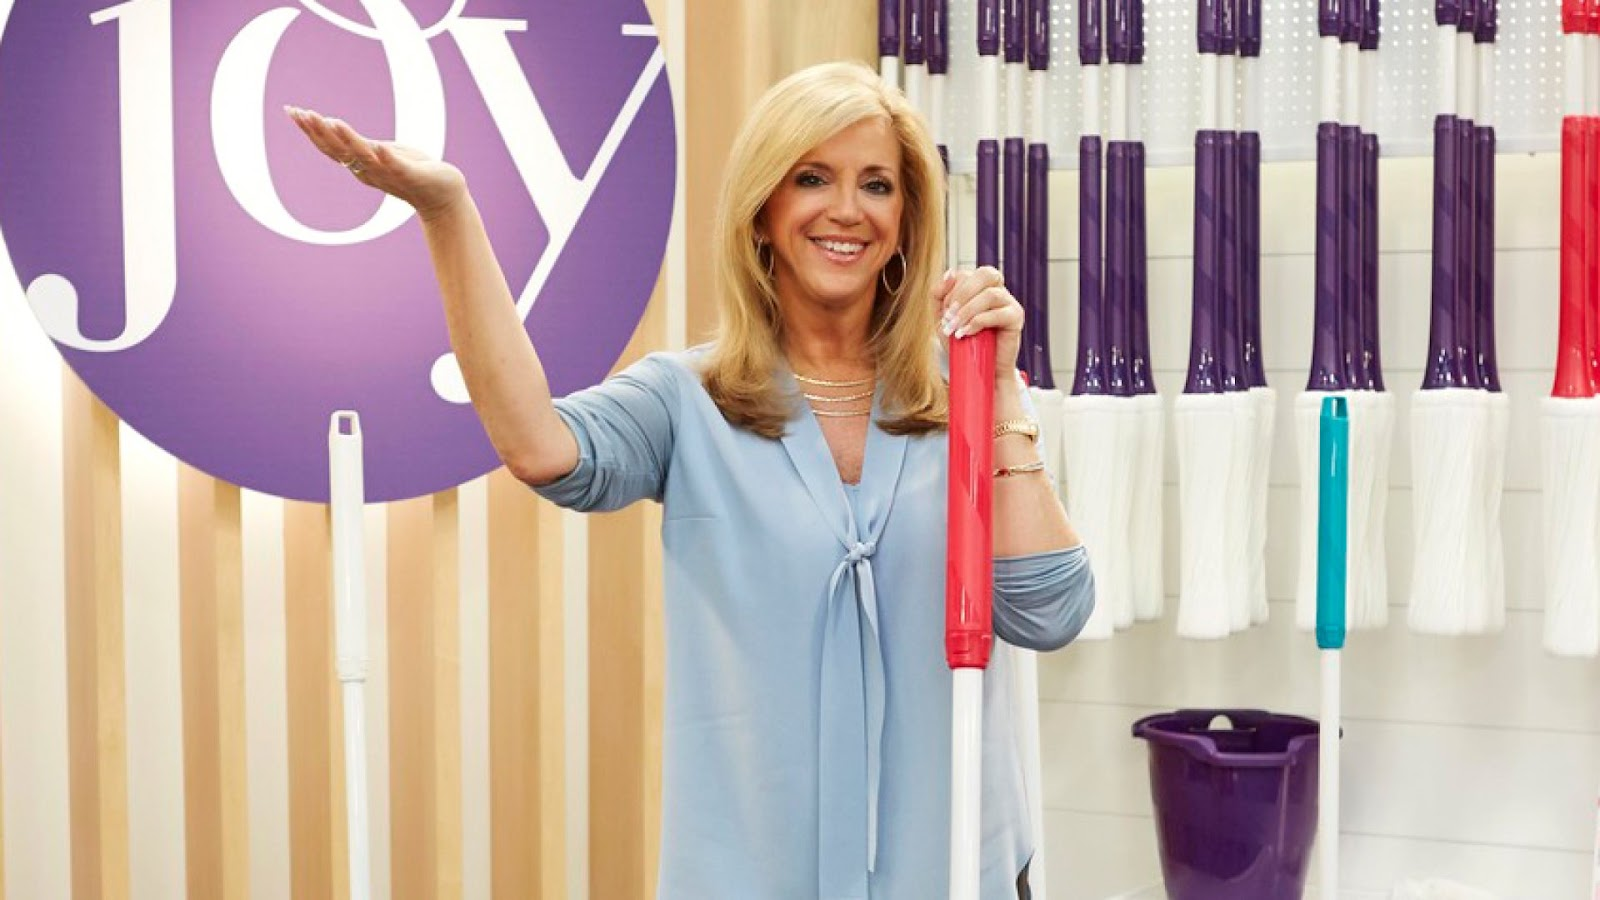 Female Inventors - Joy Mangano - Self Wringing Mop